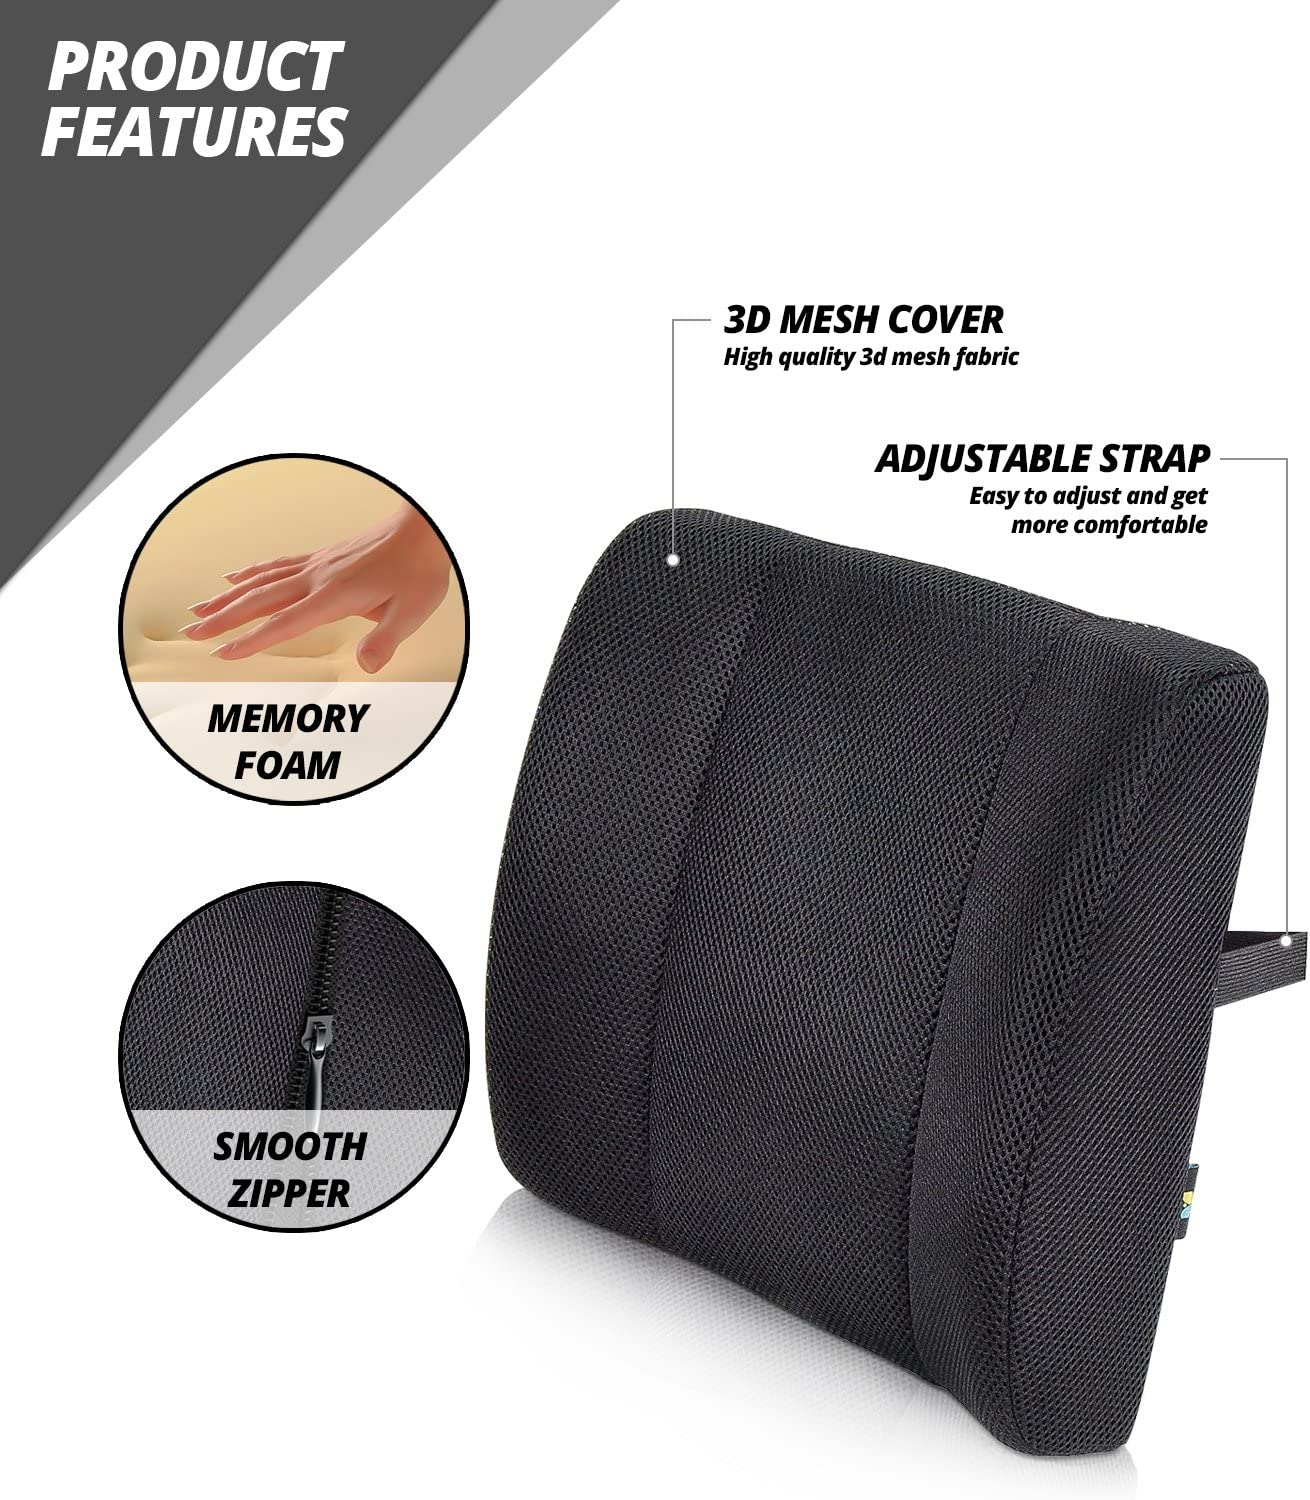 Lumbar Support Back Cushion Pillow Work Chair Back Support,Wheelchair Cushion with Straps, Sciatica and Pain Relief